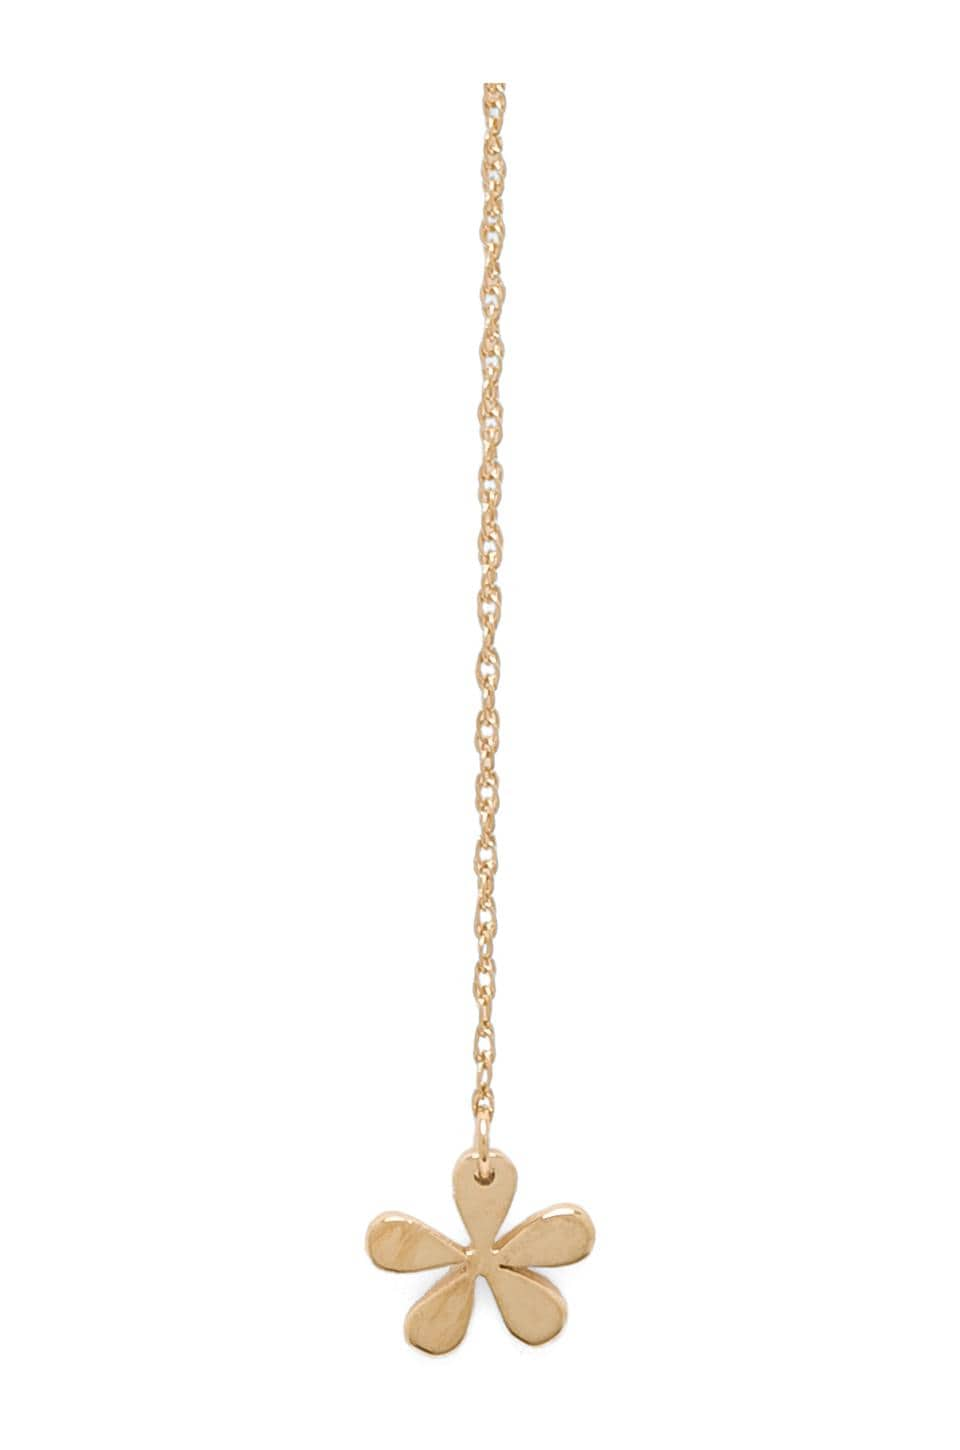 Jennifer Zeuner Lourdes Lariat Necklace in Yellow